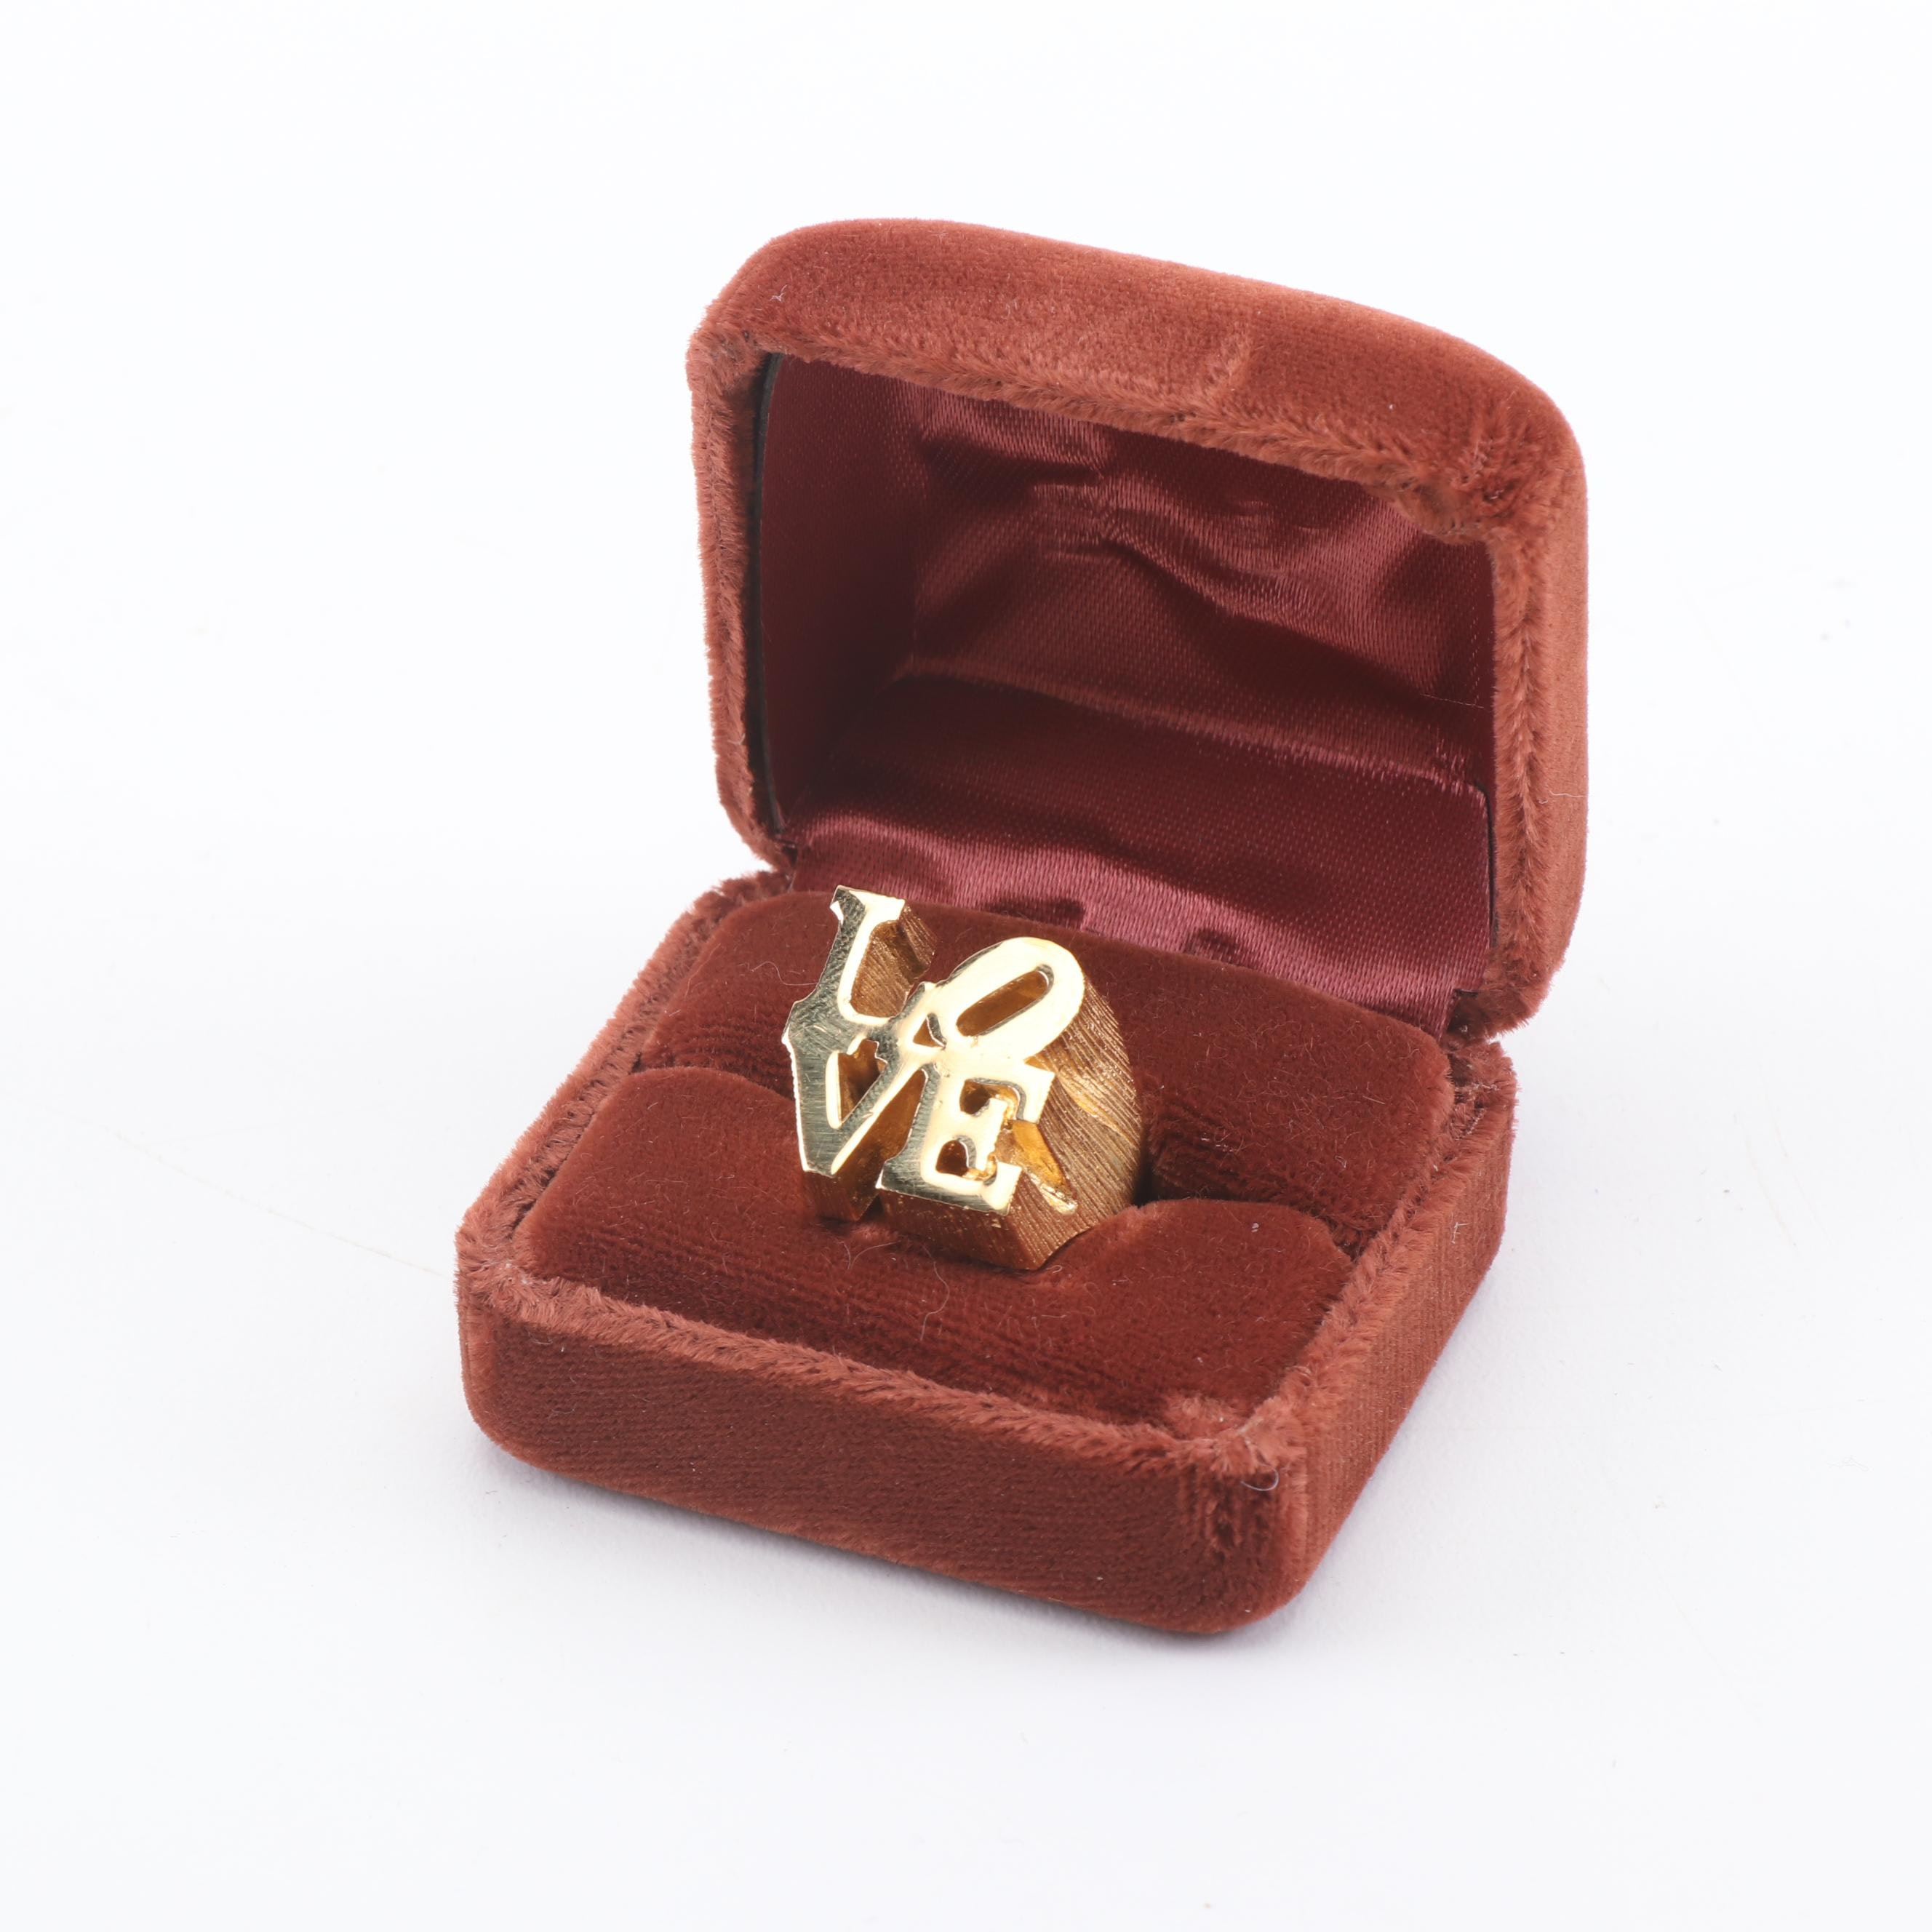 'The Love Ring' Ultima 2 Charles Revson Costume Jewelry Ring